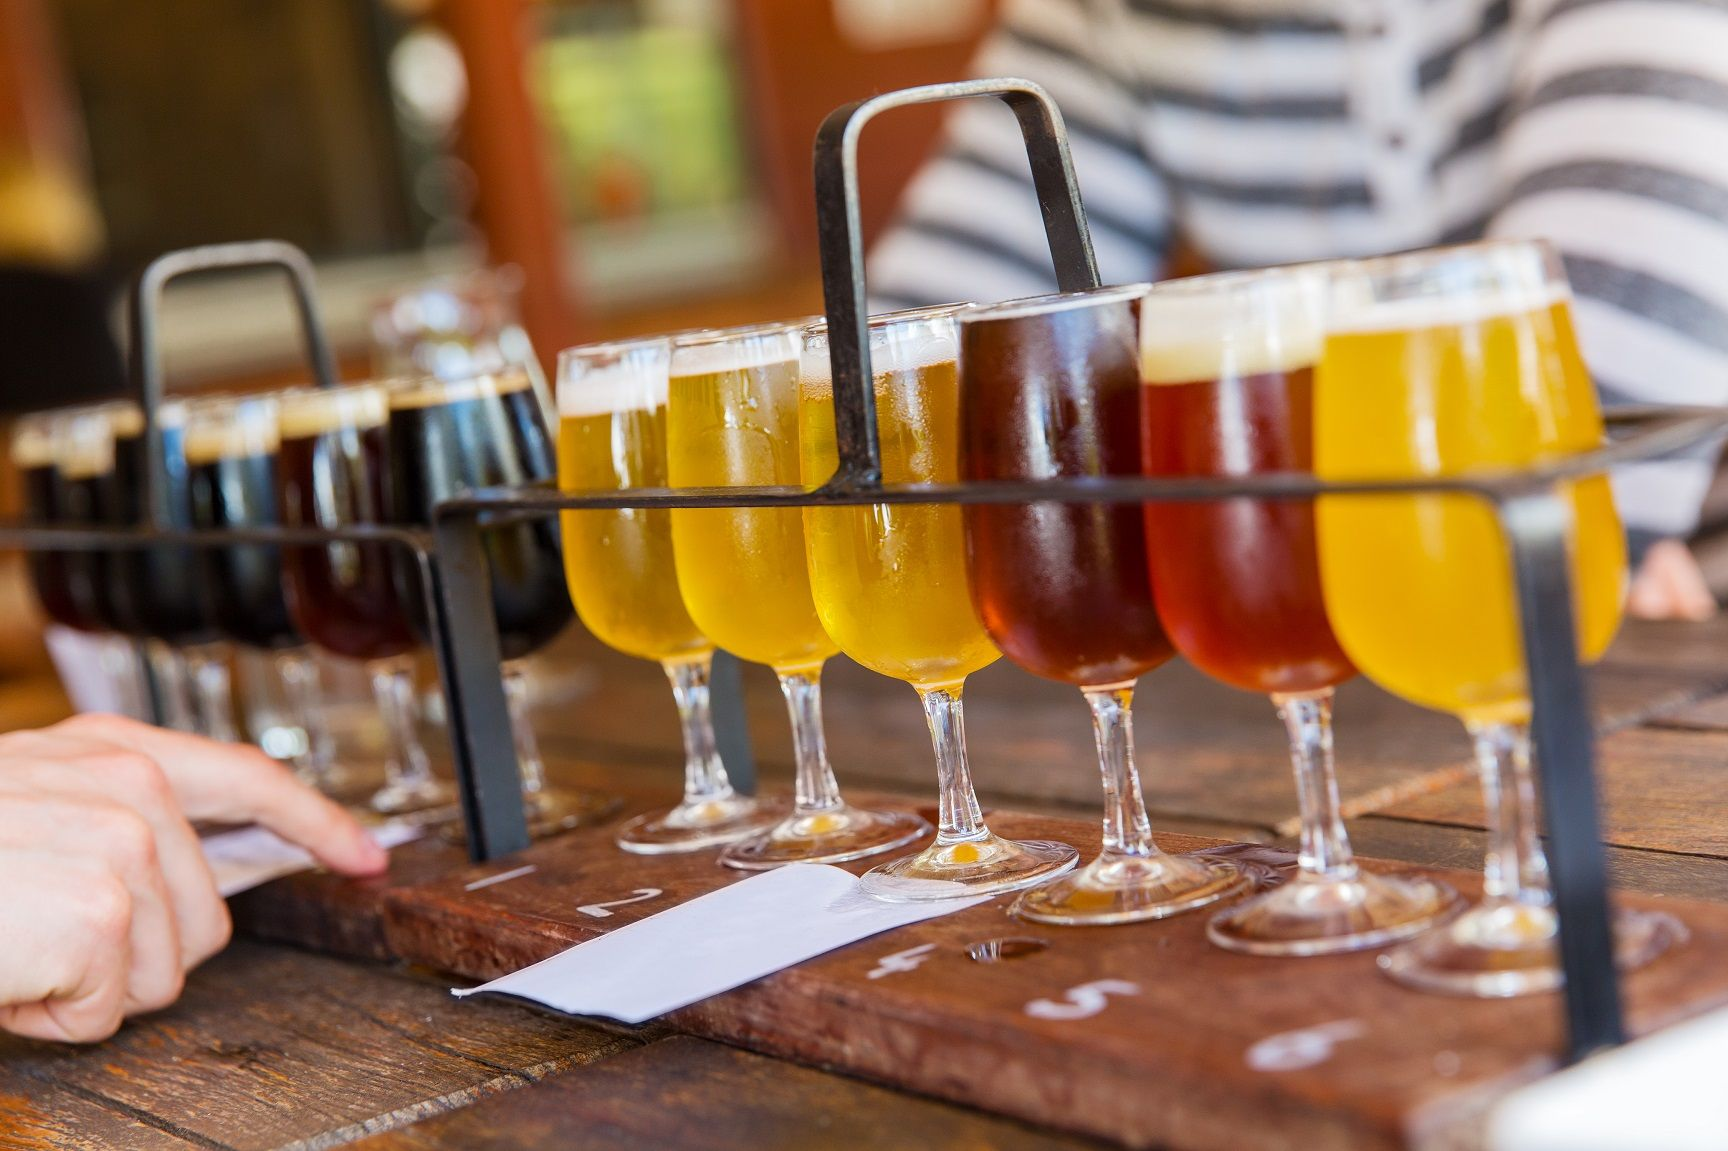 10 Delicious Beers You Need to Experience